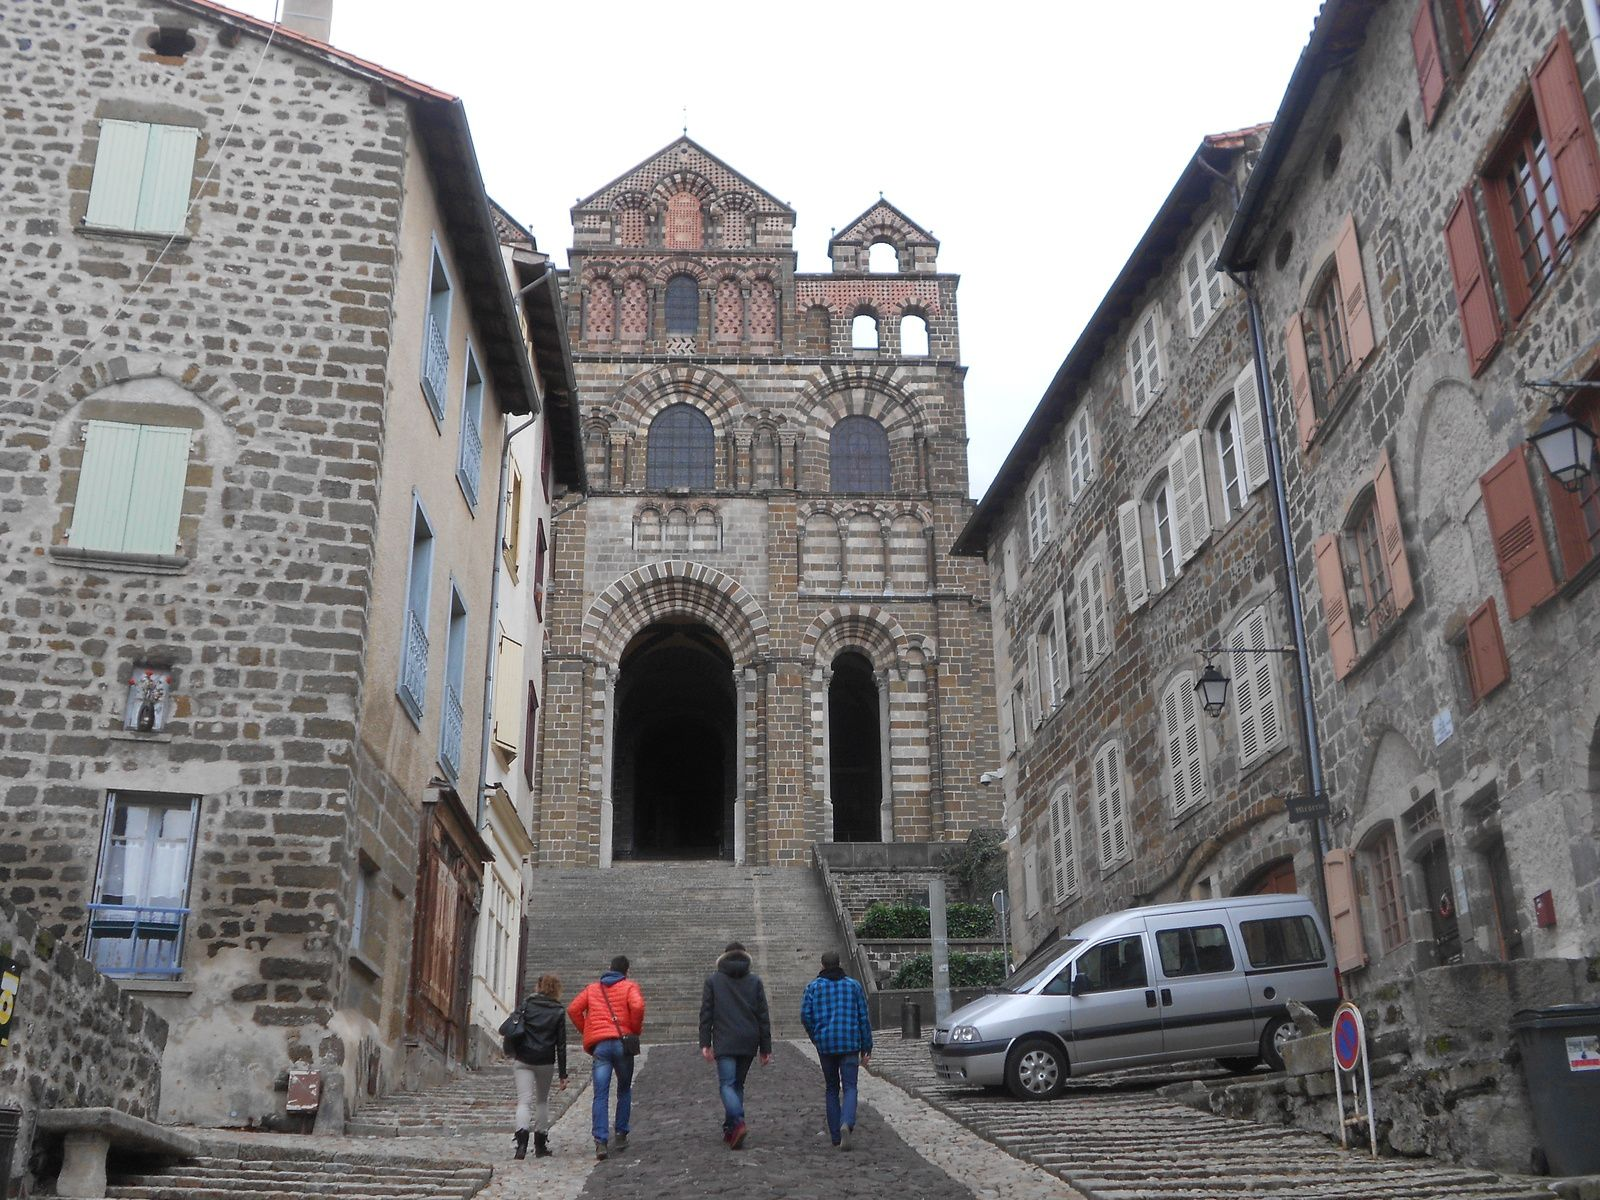 rue des tables qui monte a la cathedrale du puy